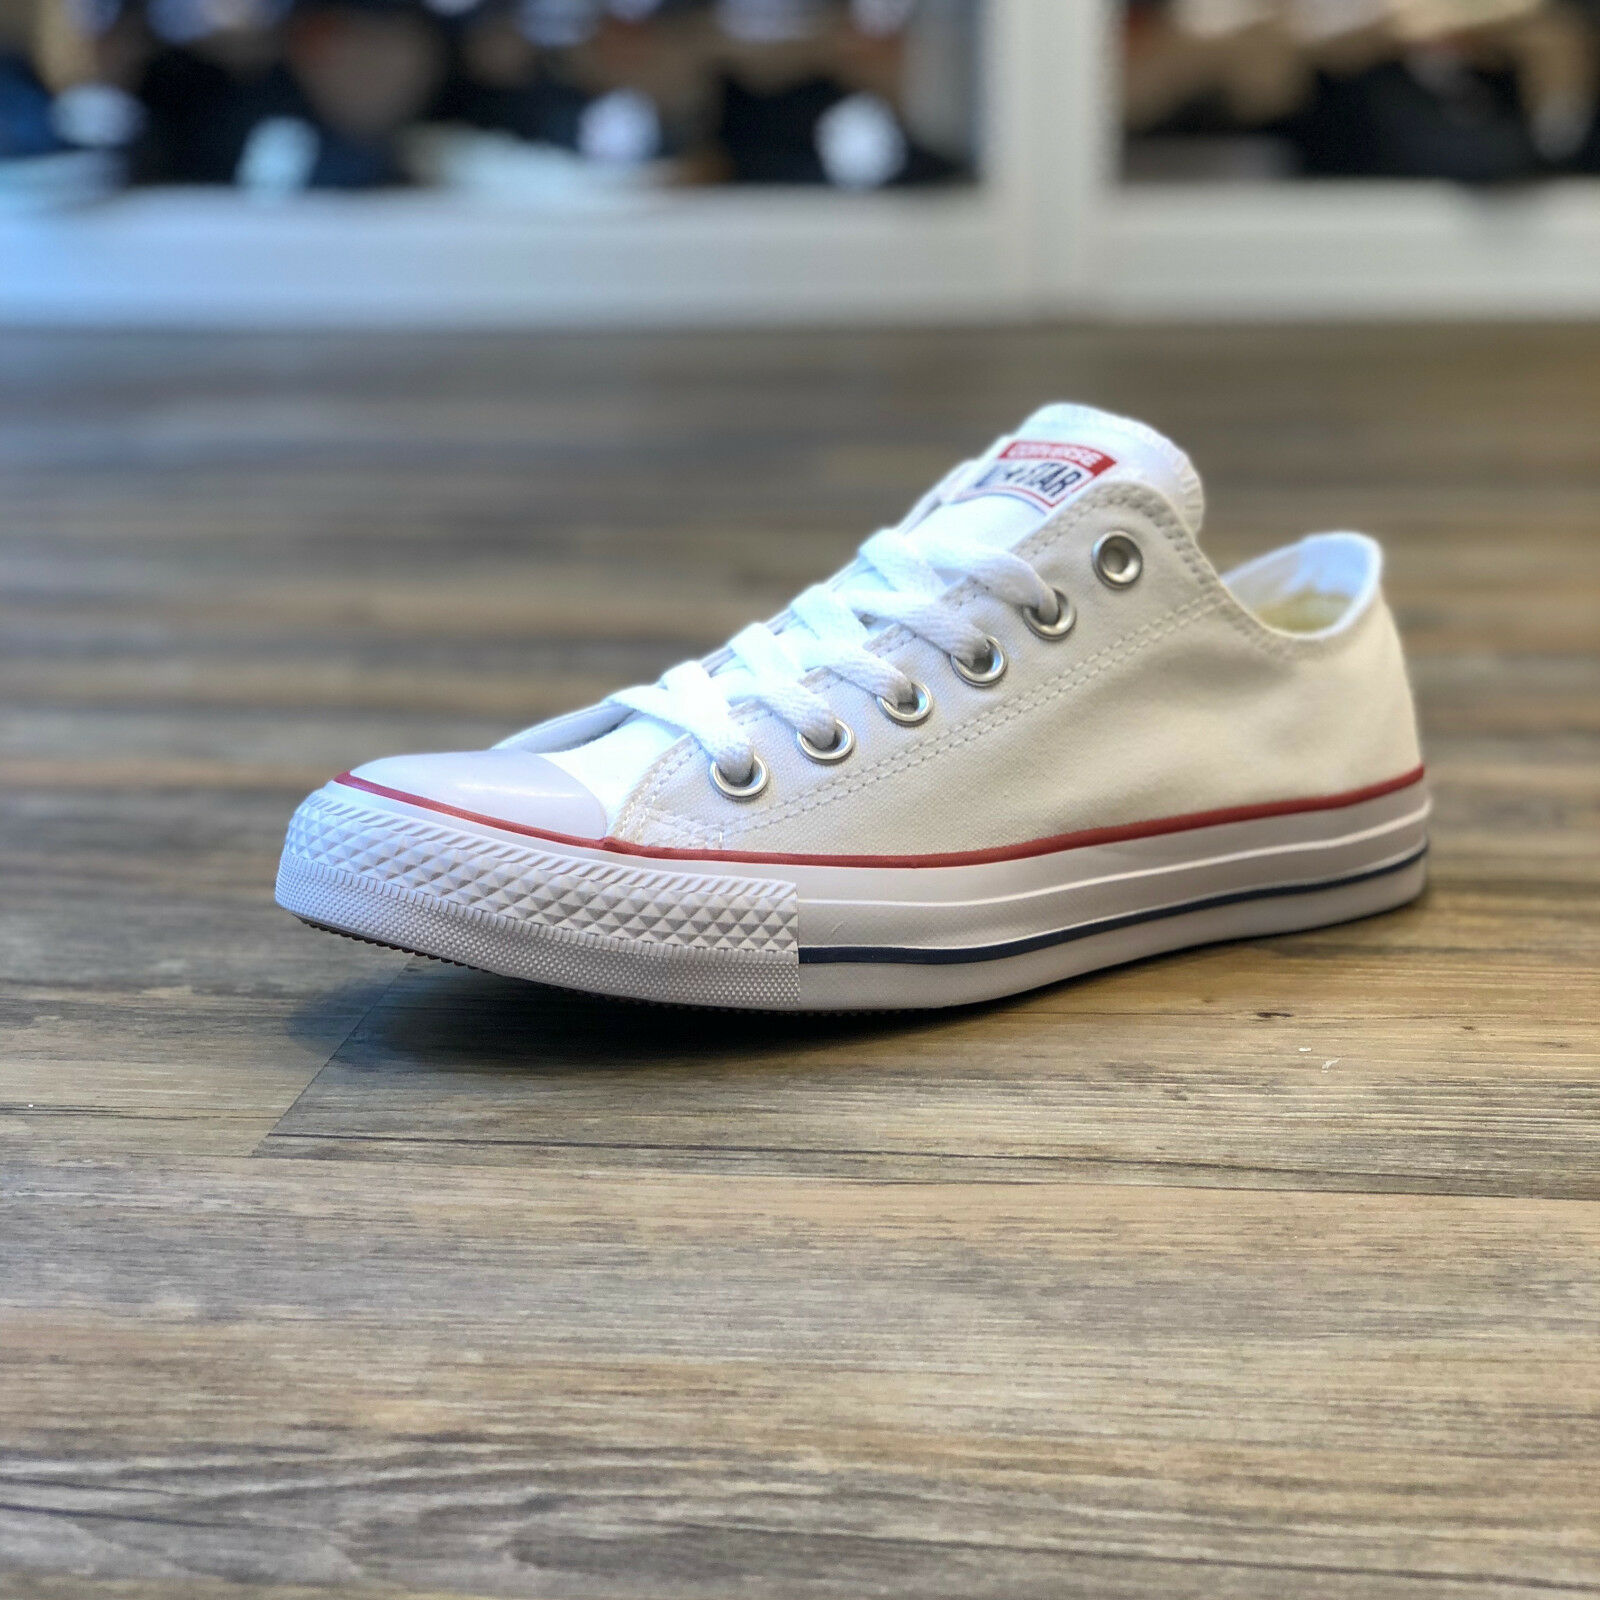 Converse All Star Star Star OS Low Taille 39,5 Blanc Chaussures Turn Basket  homme femme NOUVEAU m7652 | Simple D'utilisation  803dcb